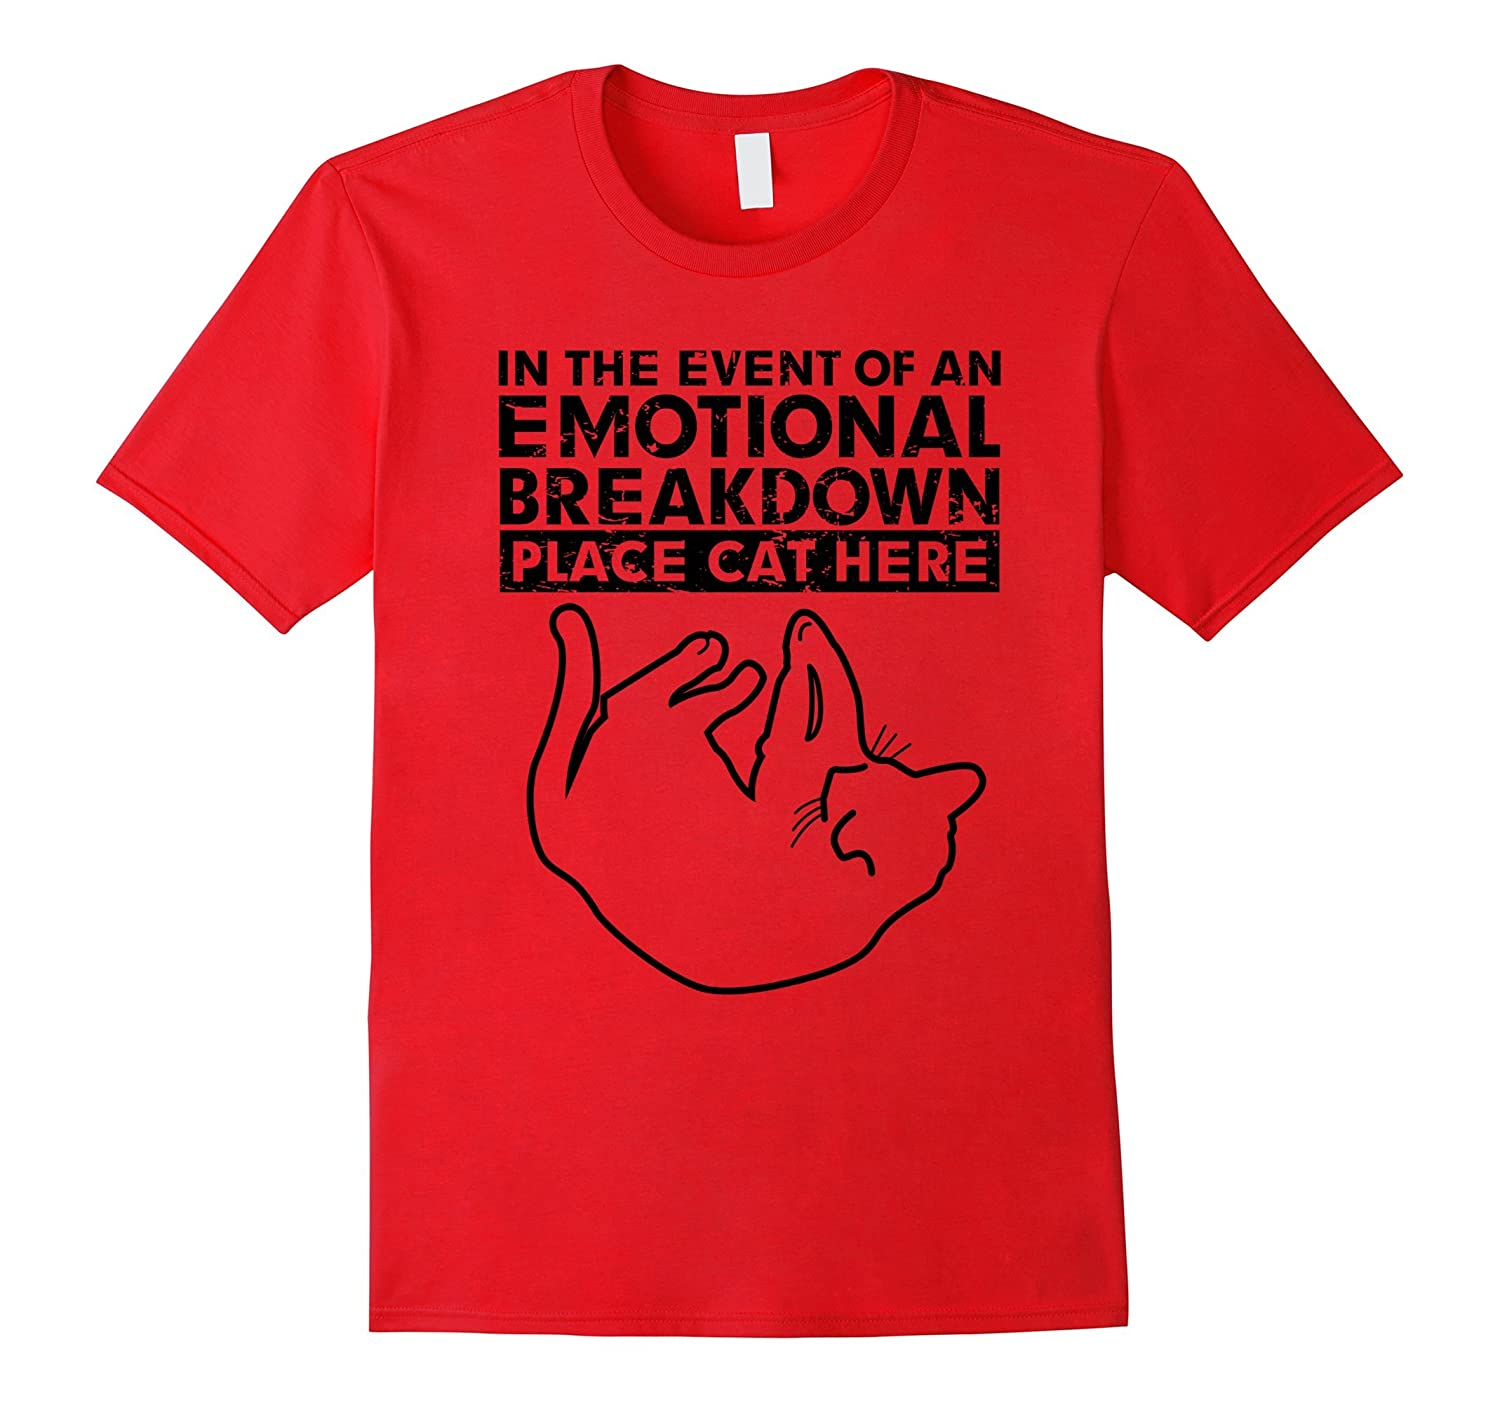 In the Event of an Emotional Breakdown Place Cat Here TShirt-Vaci